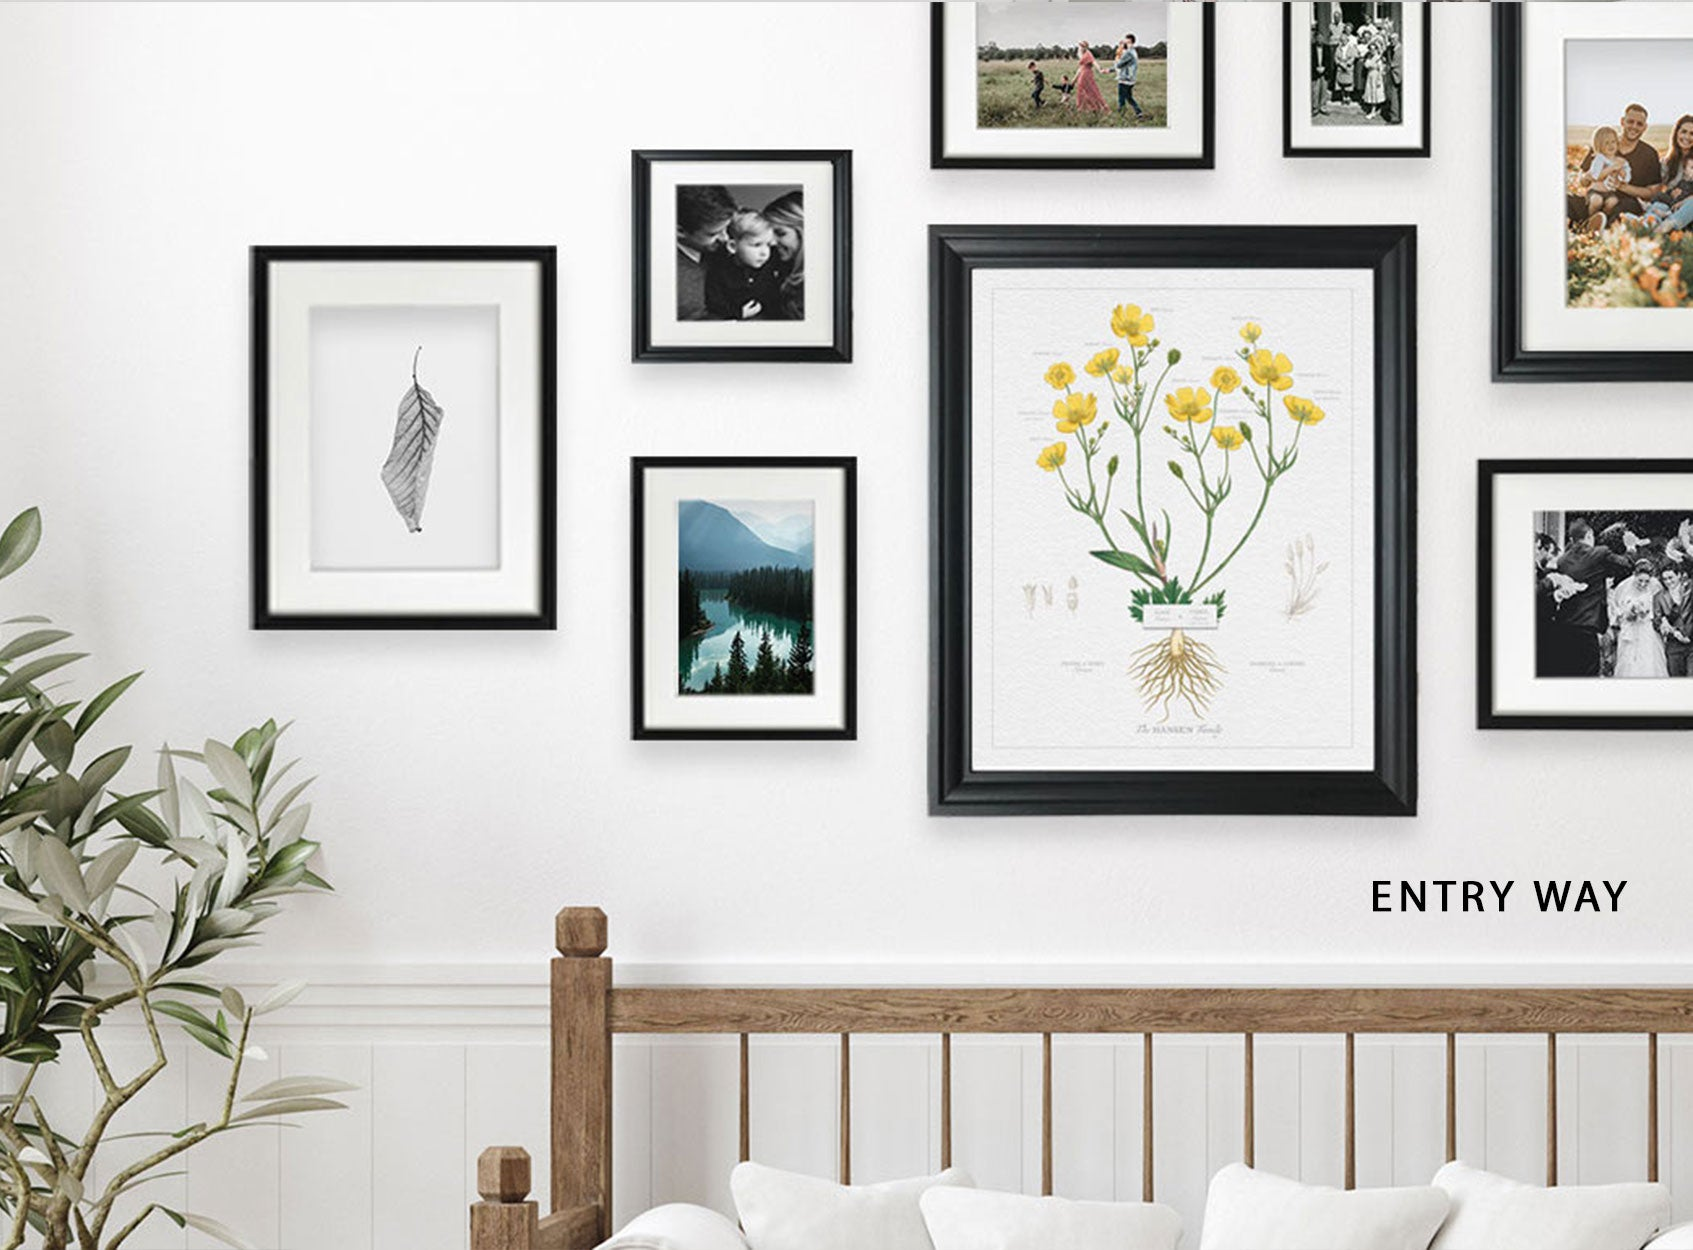 Family Gallery Wall Entry Wall Lifestyle image